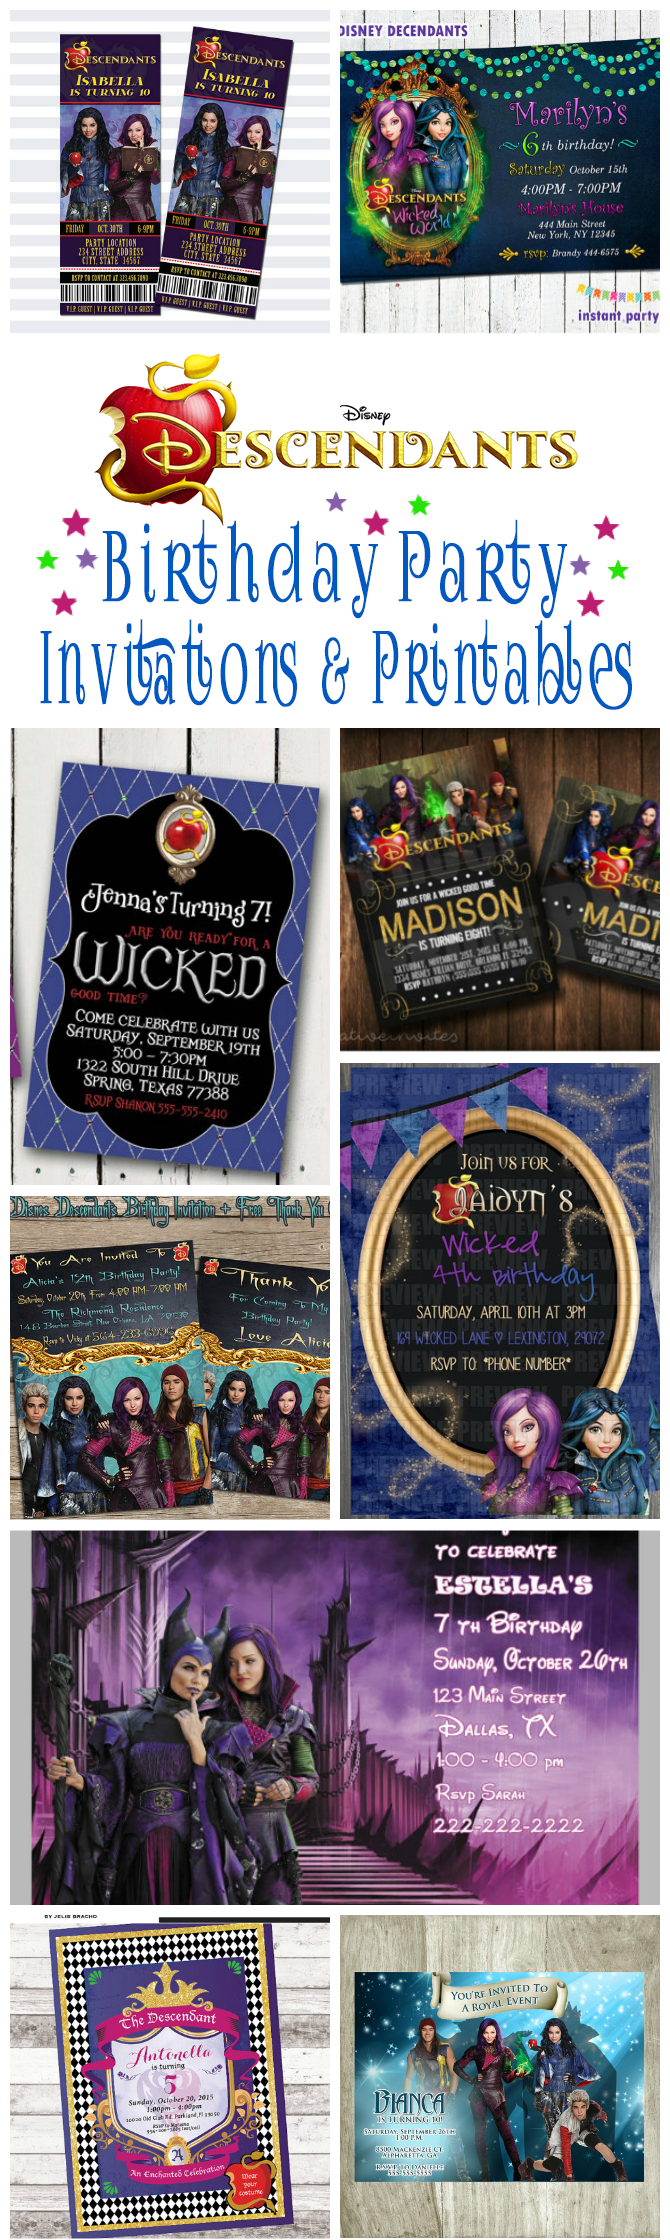 Disney Descendants Birthday Party Invitations And Other